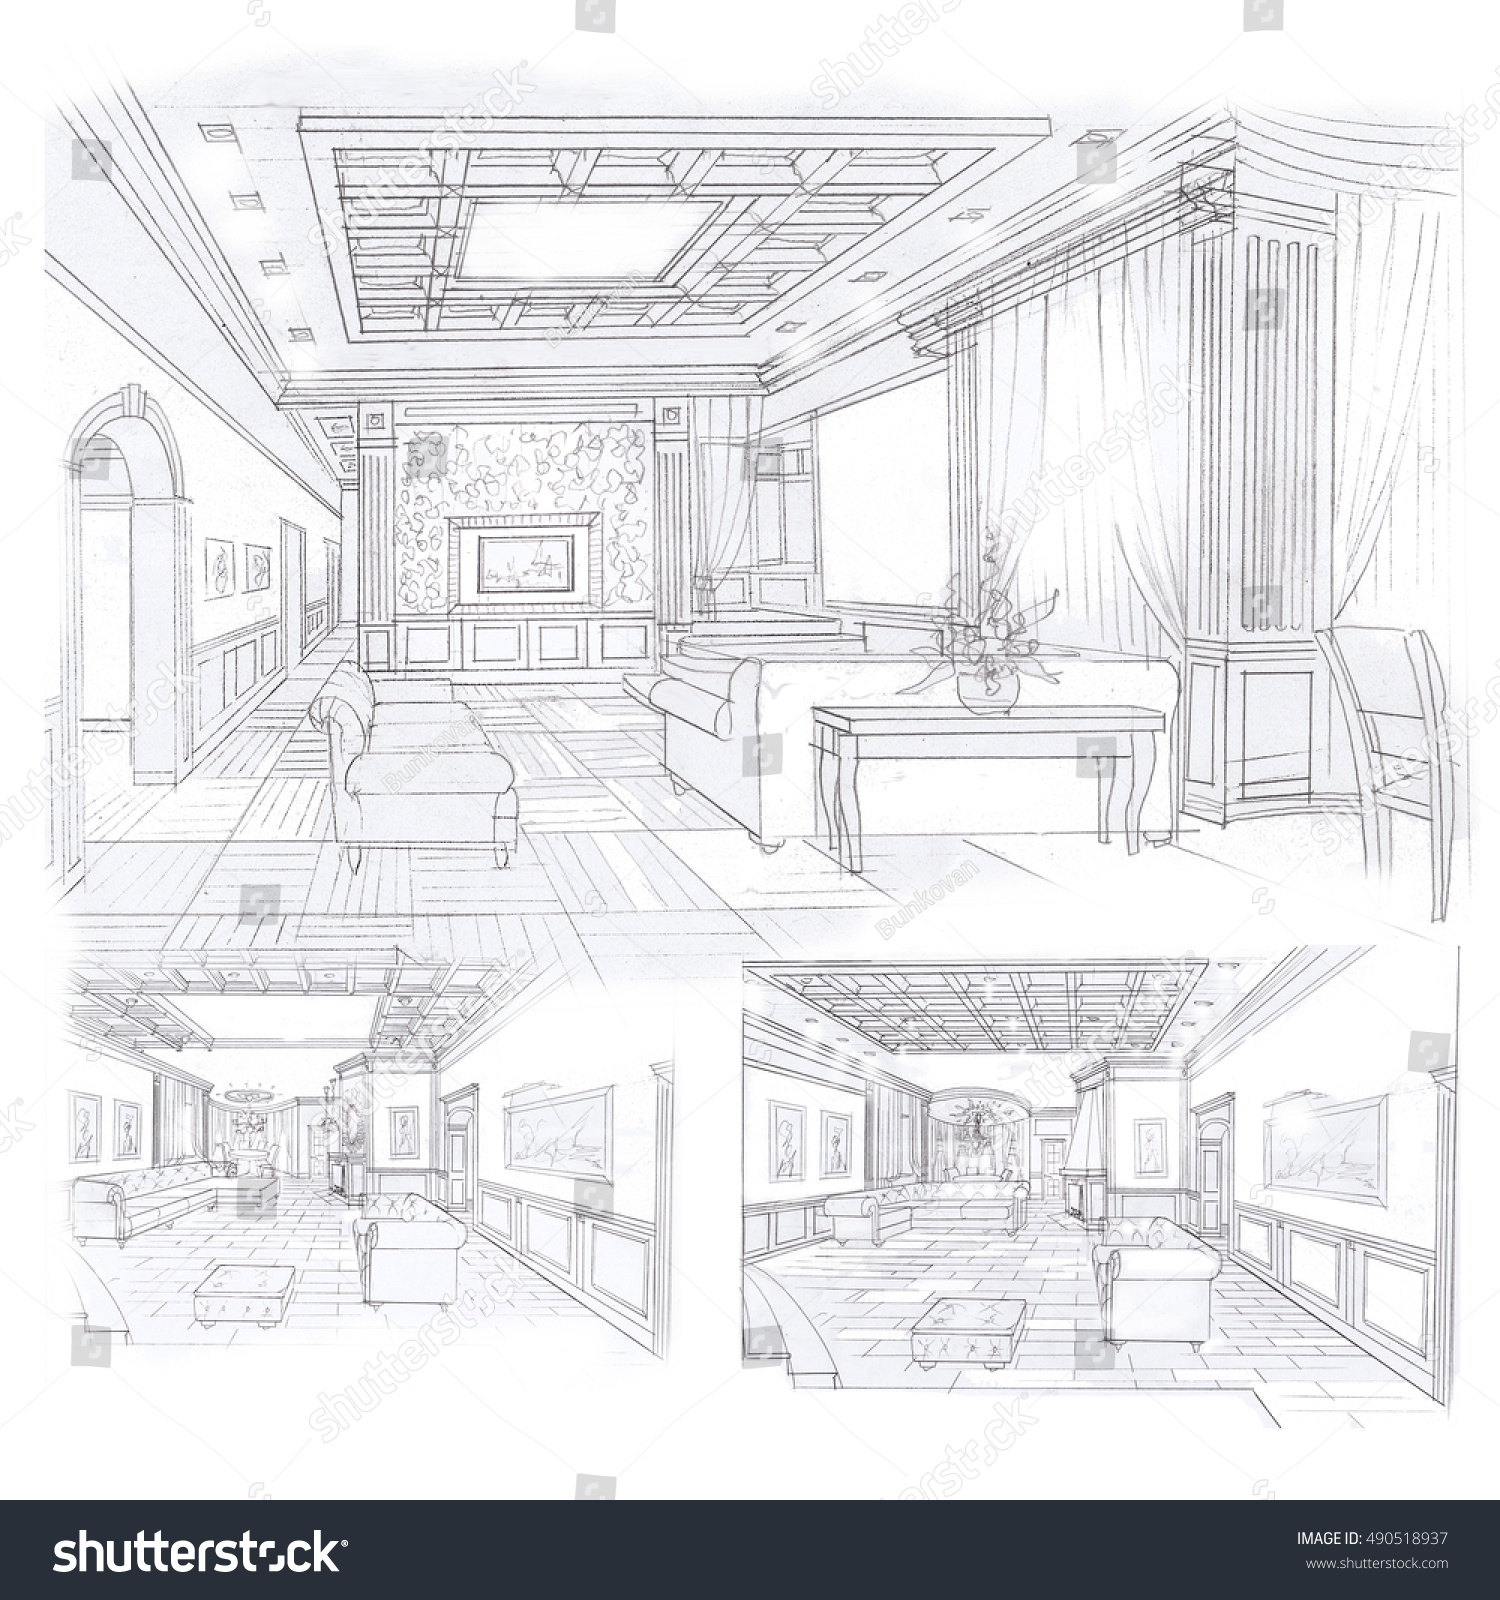 Sketches Interior Living Room Dining Room Options Handmade Stock